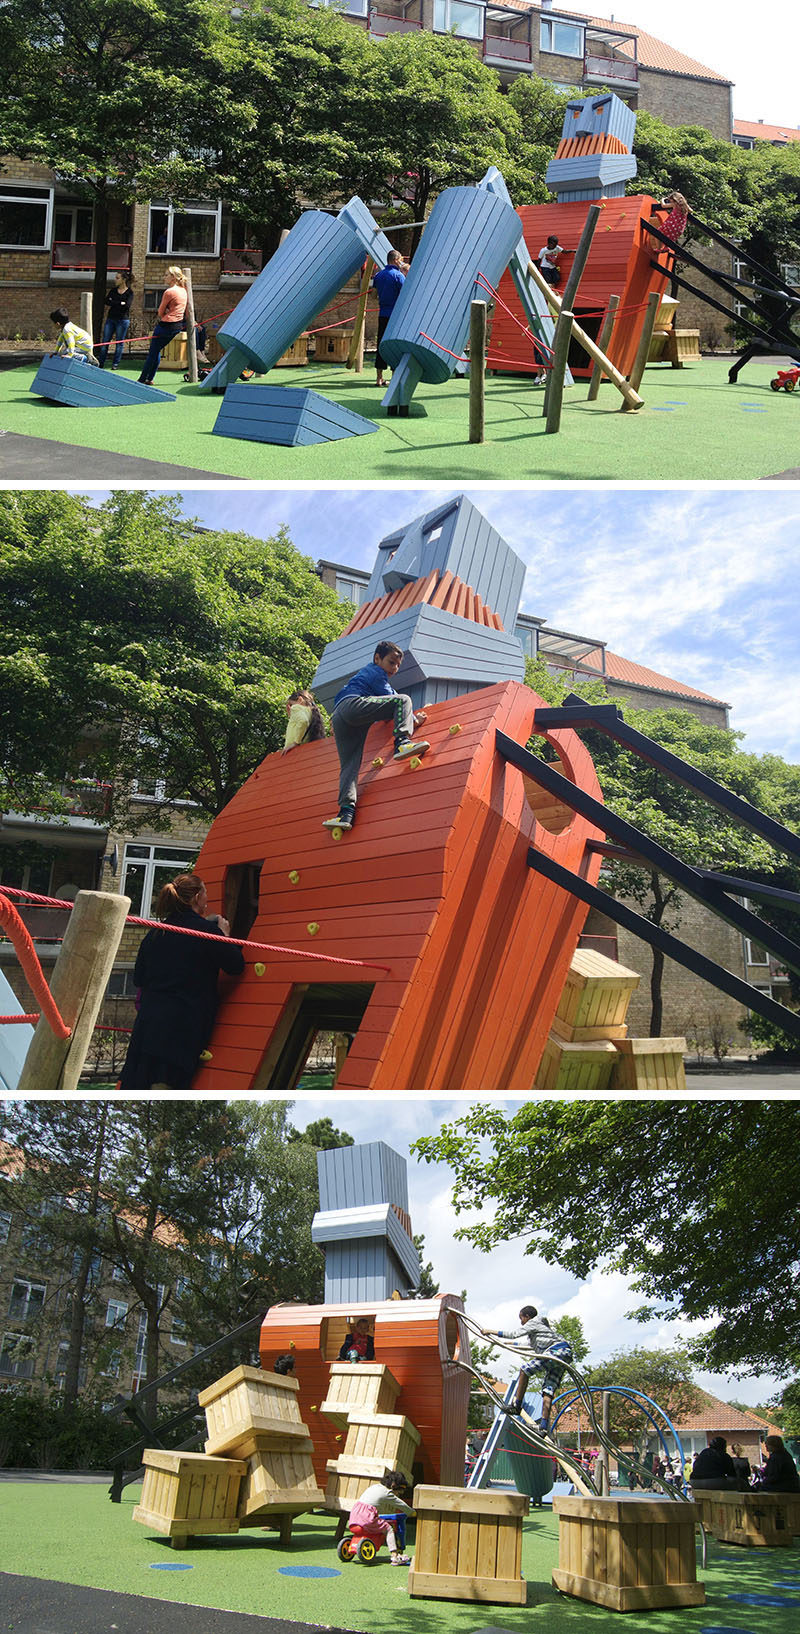 15 Amazing, Unique And Creative Playgrounds // The Monster